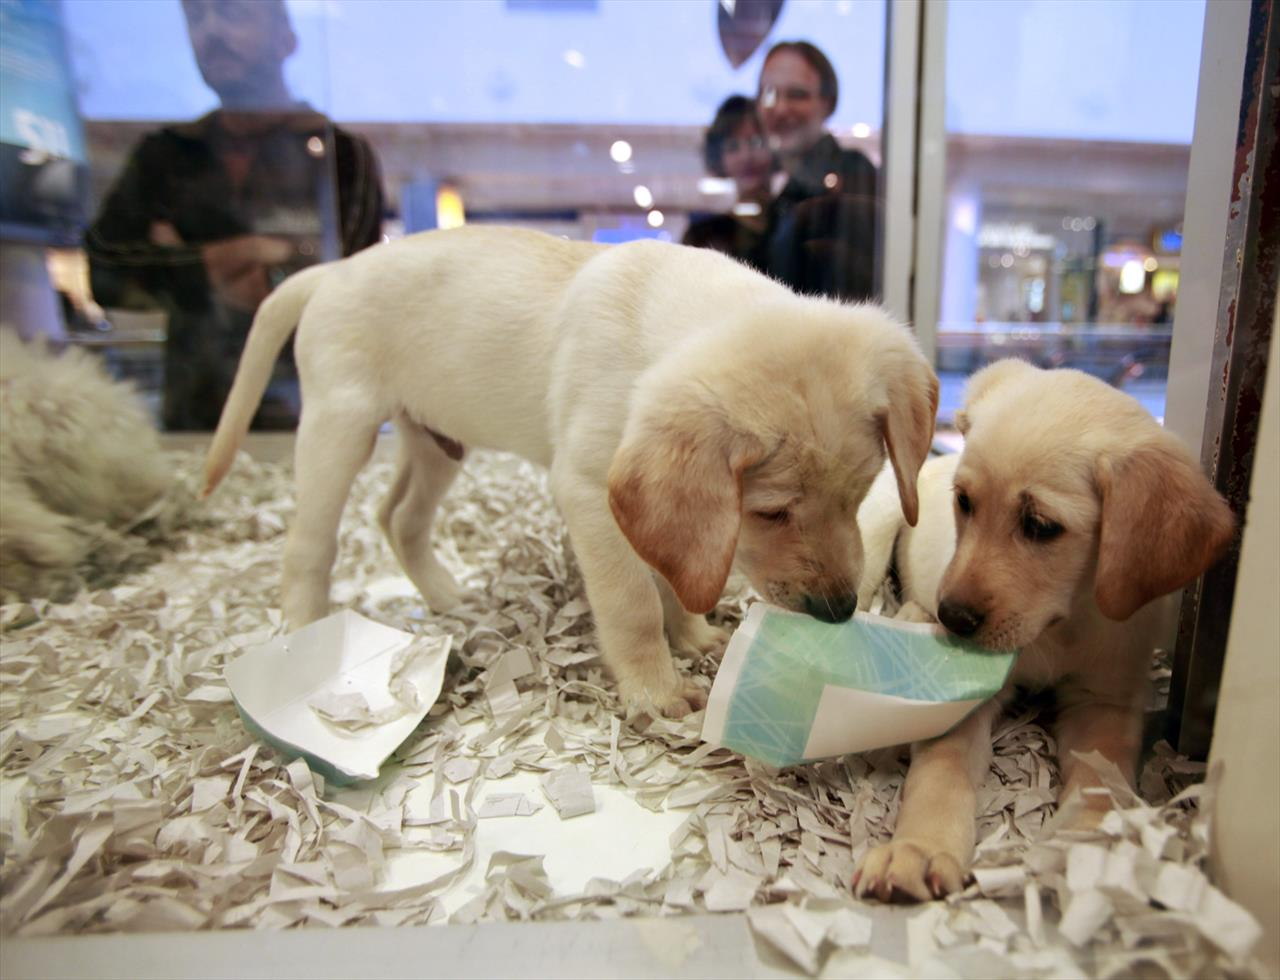 UK bans pet shops from selling puppies and kittens | The